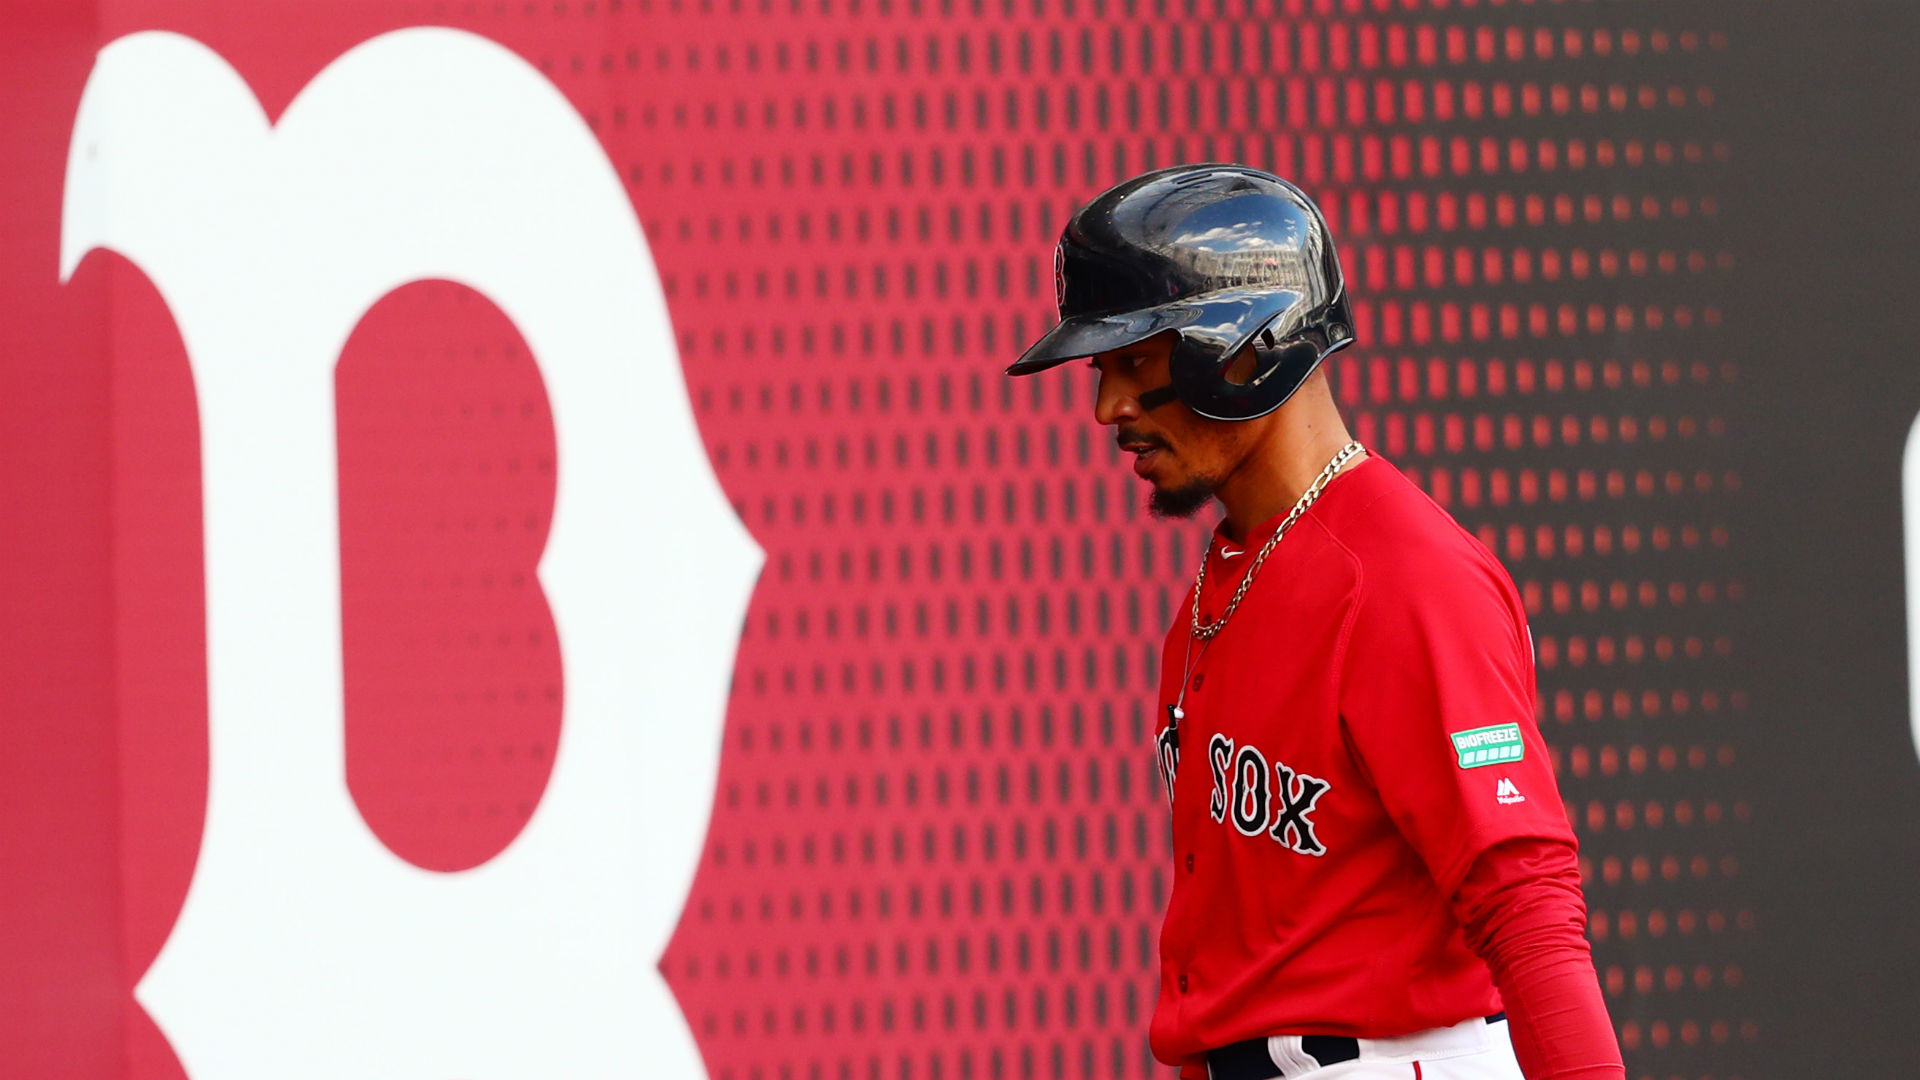 Where do the Red Sox go from here? The answer is pretty simple